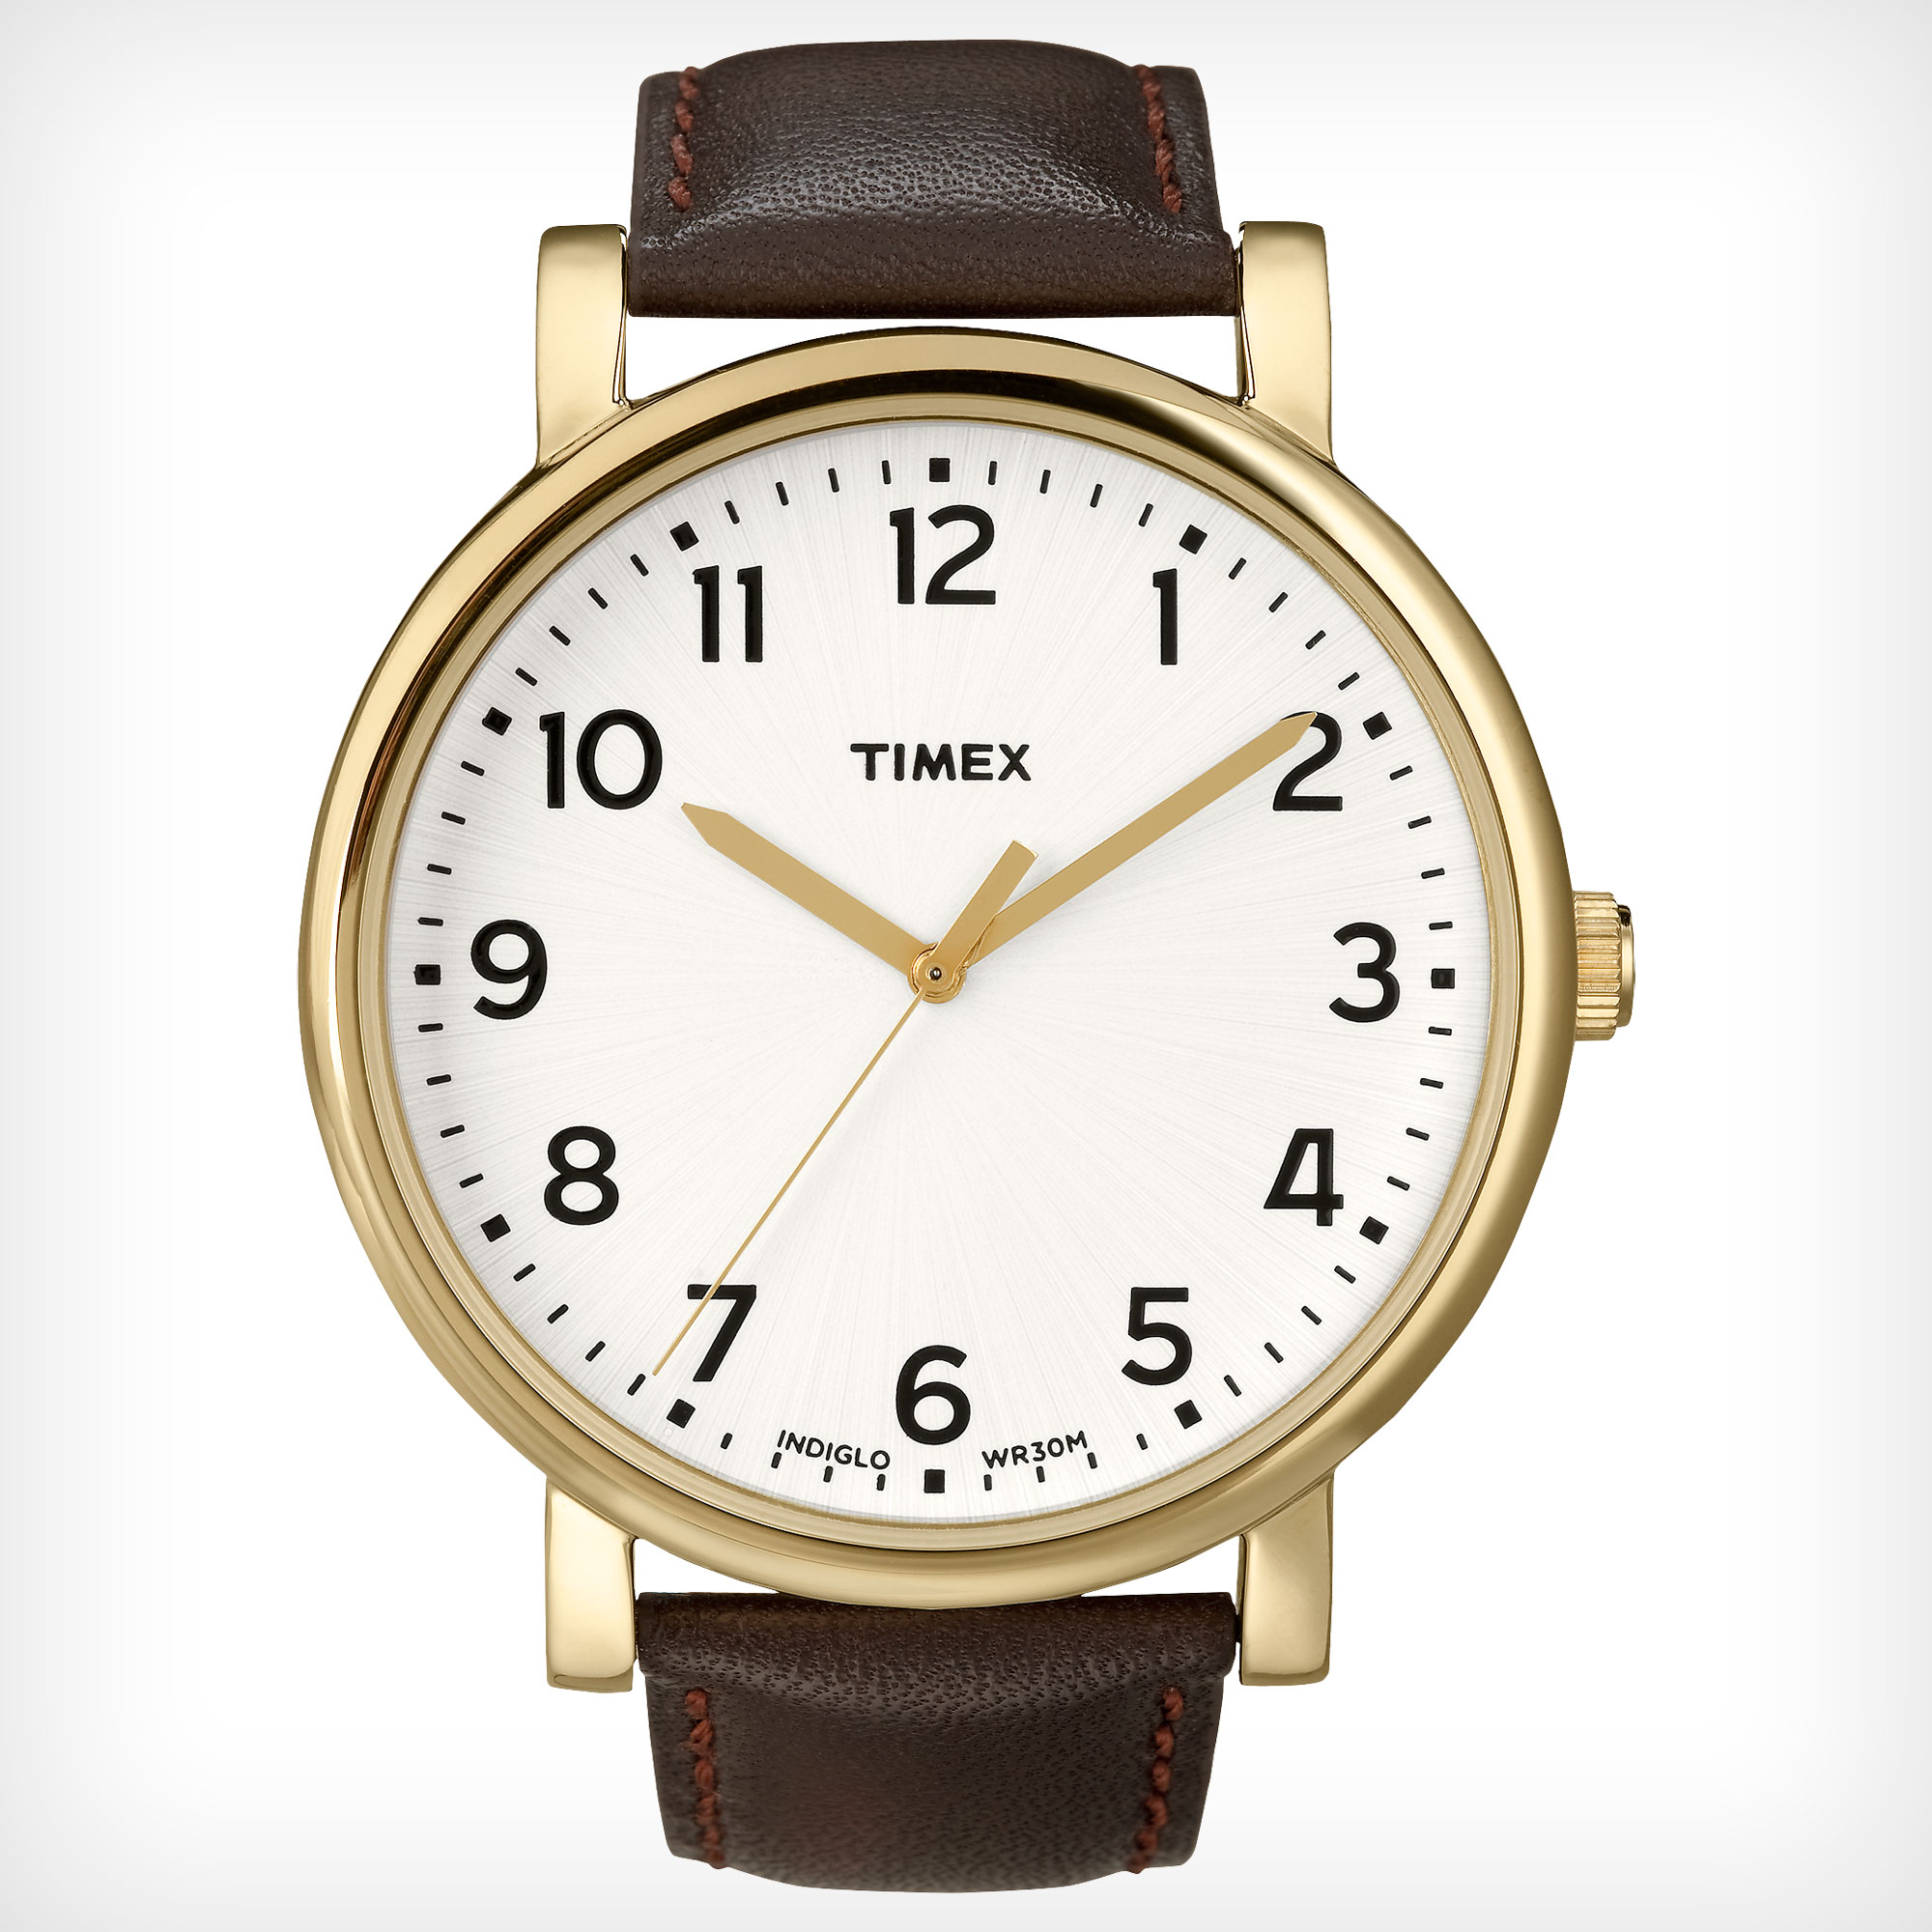 Watch Of Timex